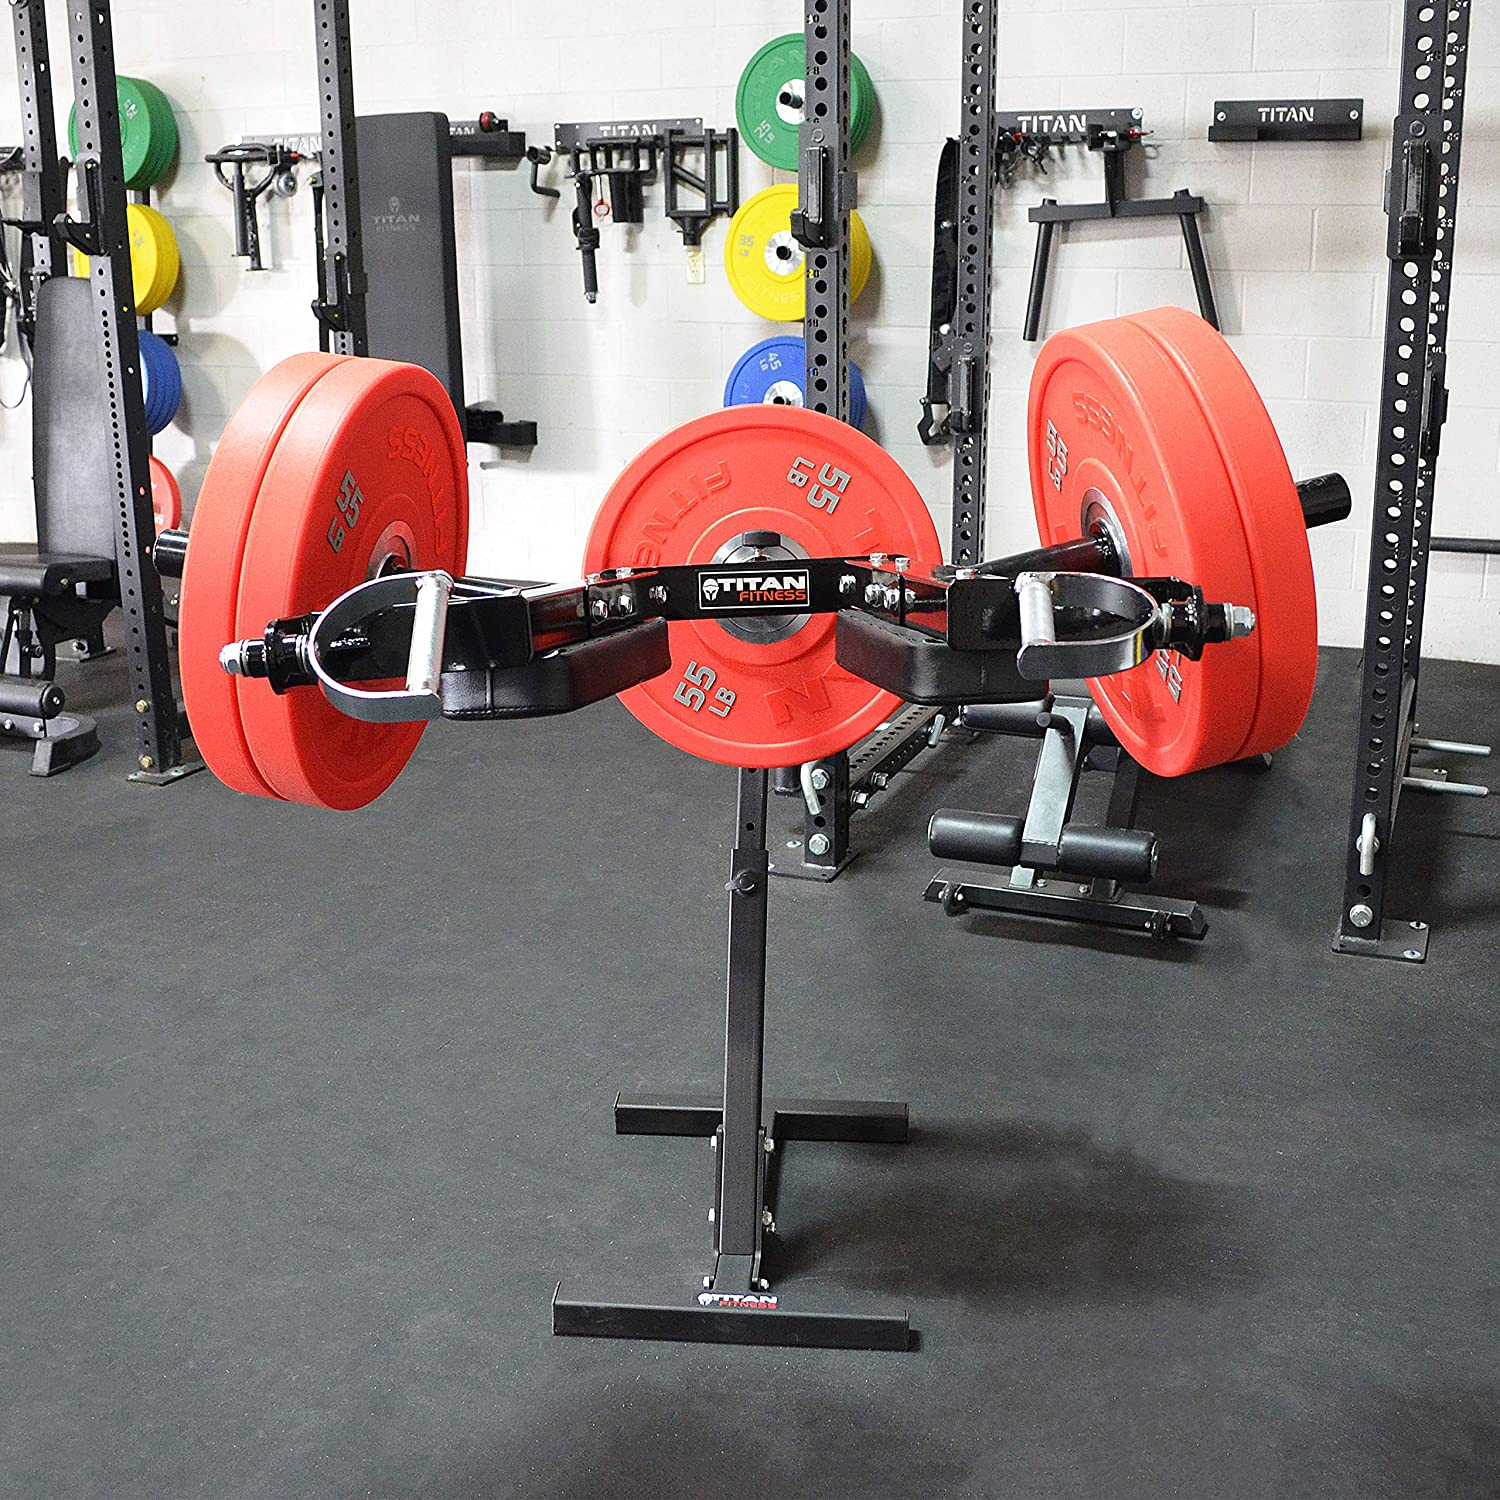 Diy garage gym gear projects survival and cross